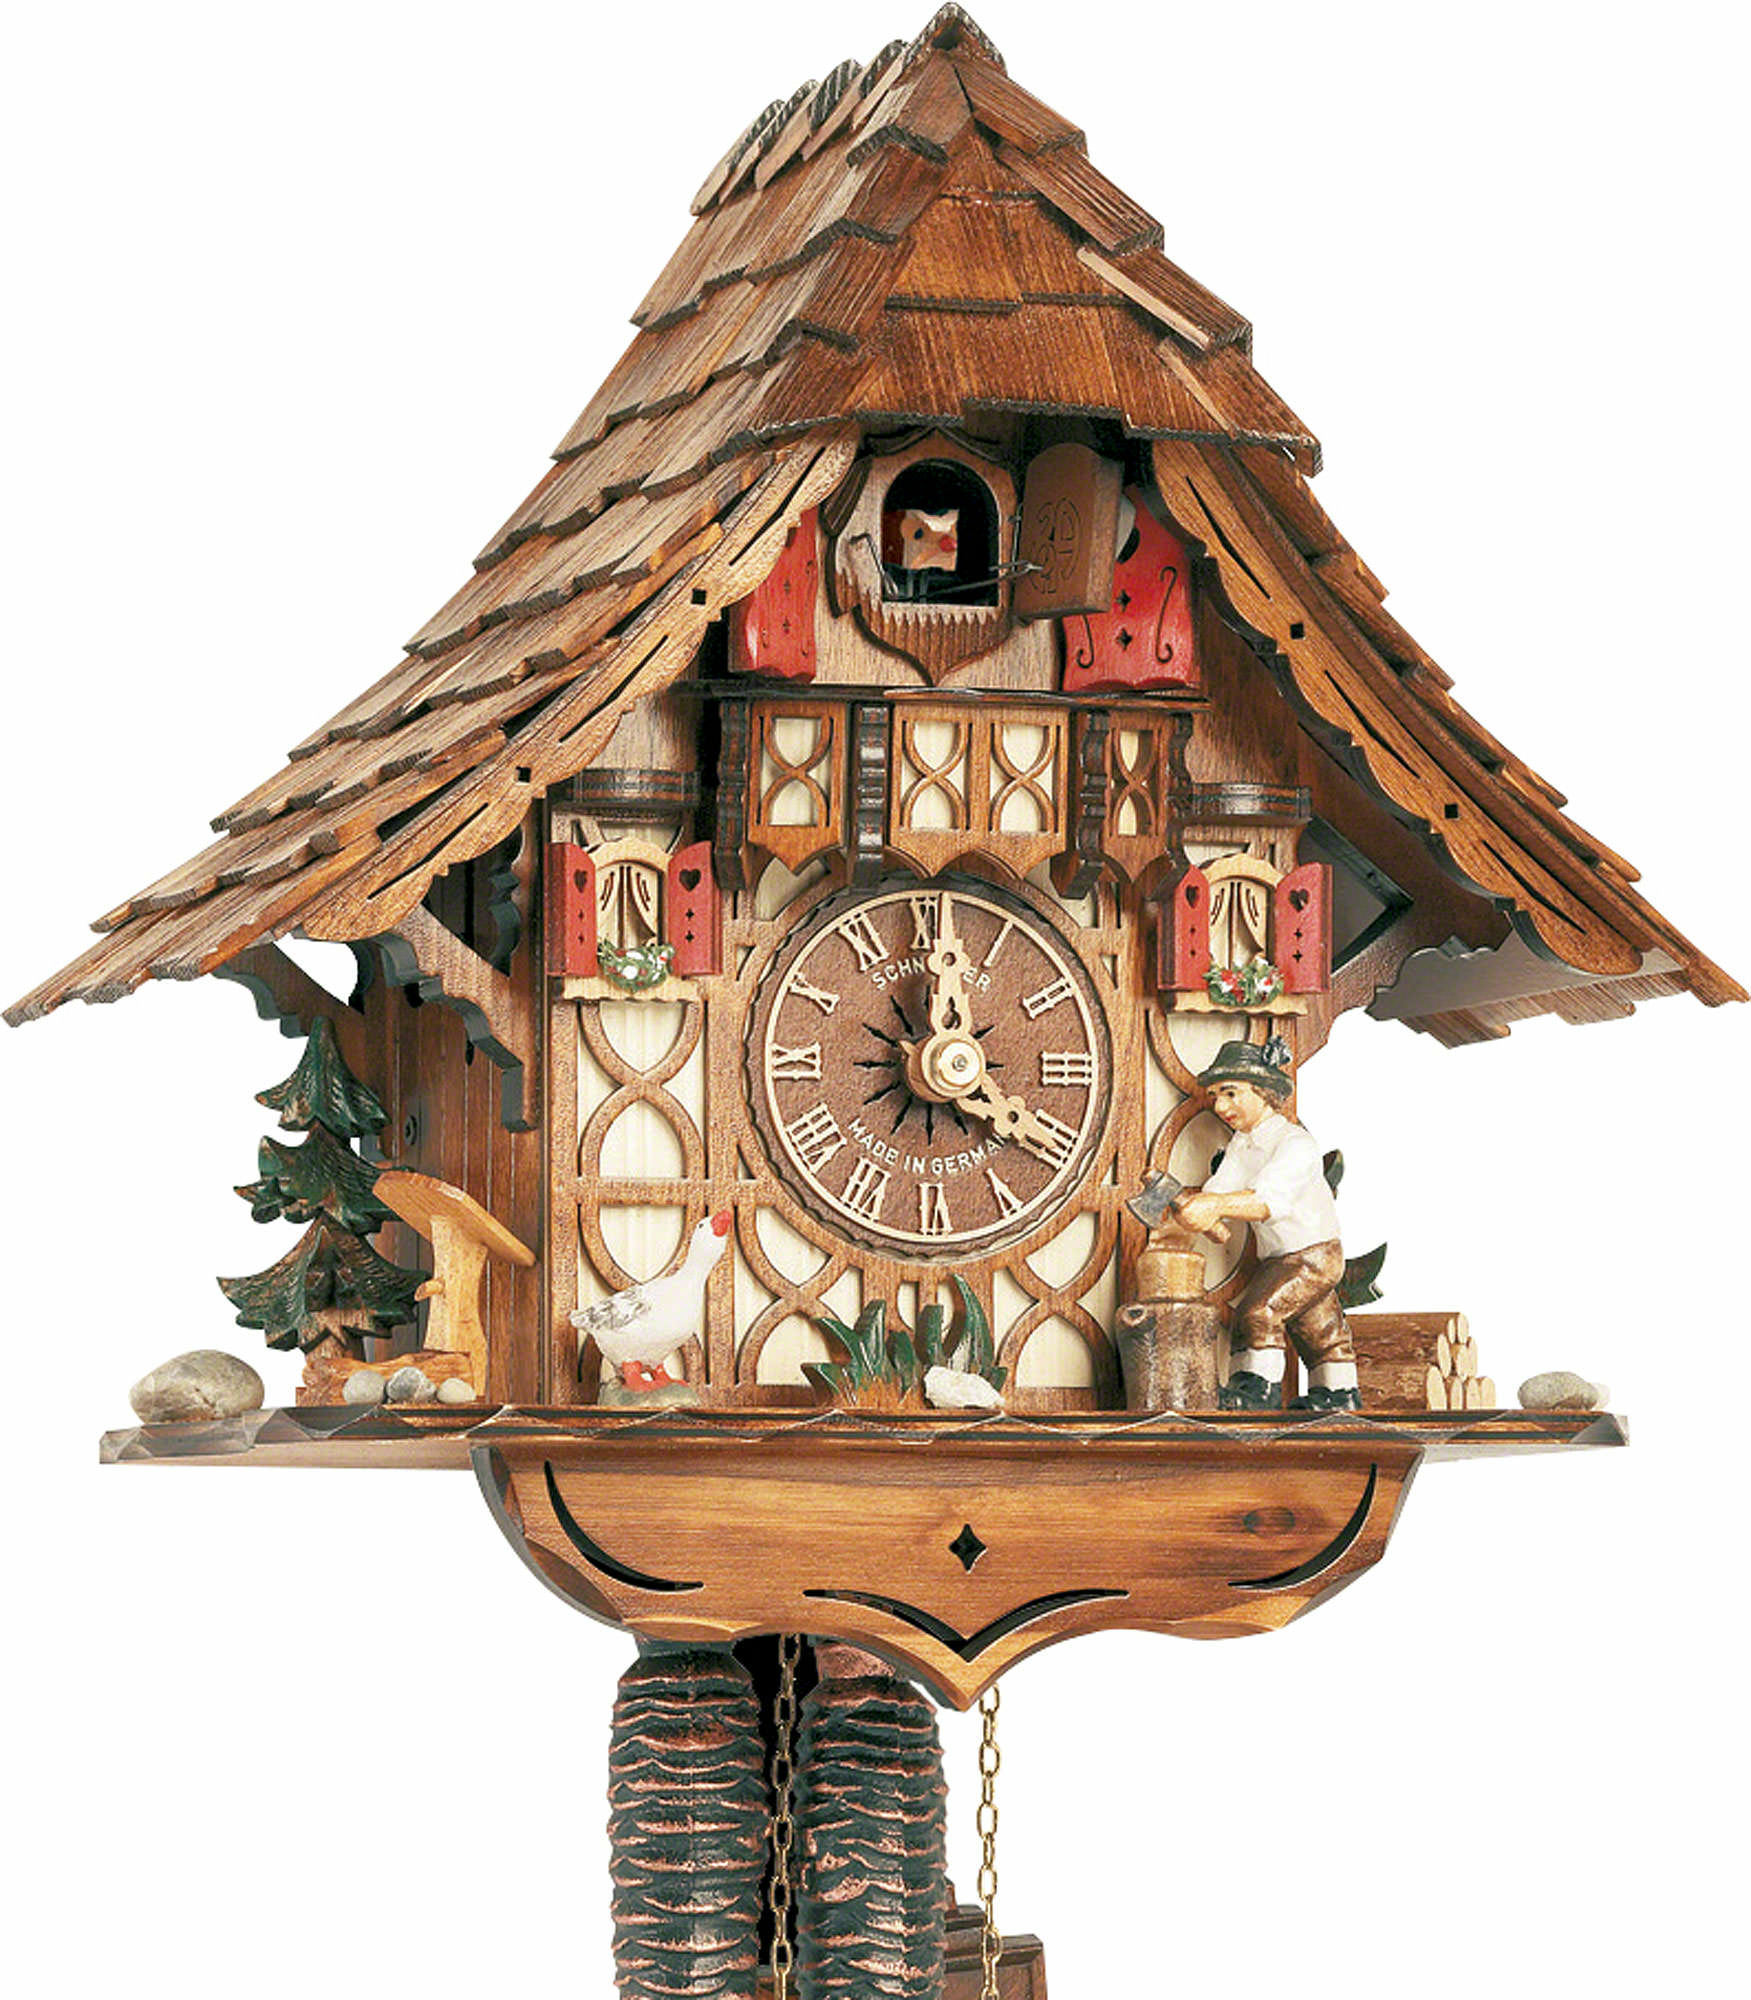 Cuckoo clock 1 day movement chalet style 27cm by anton How to make a cuckoo clock